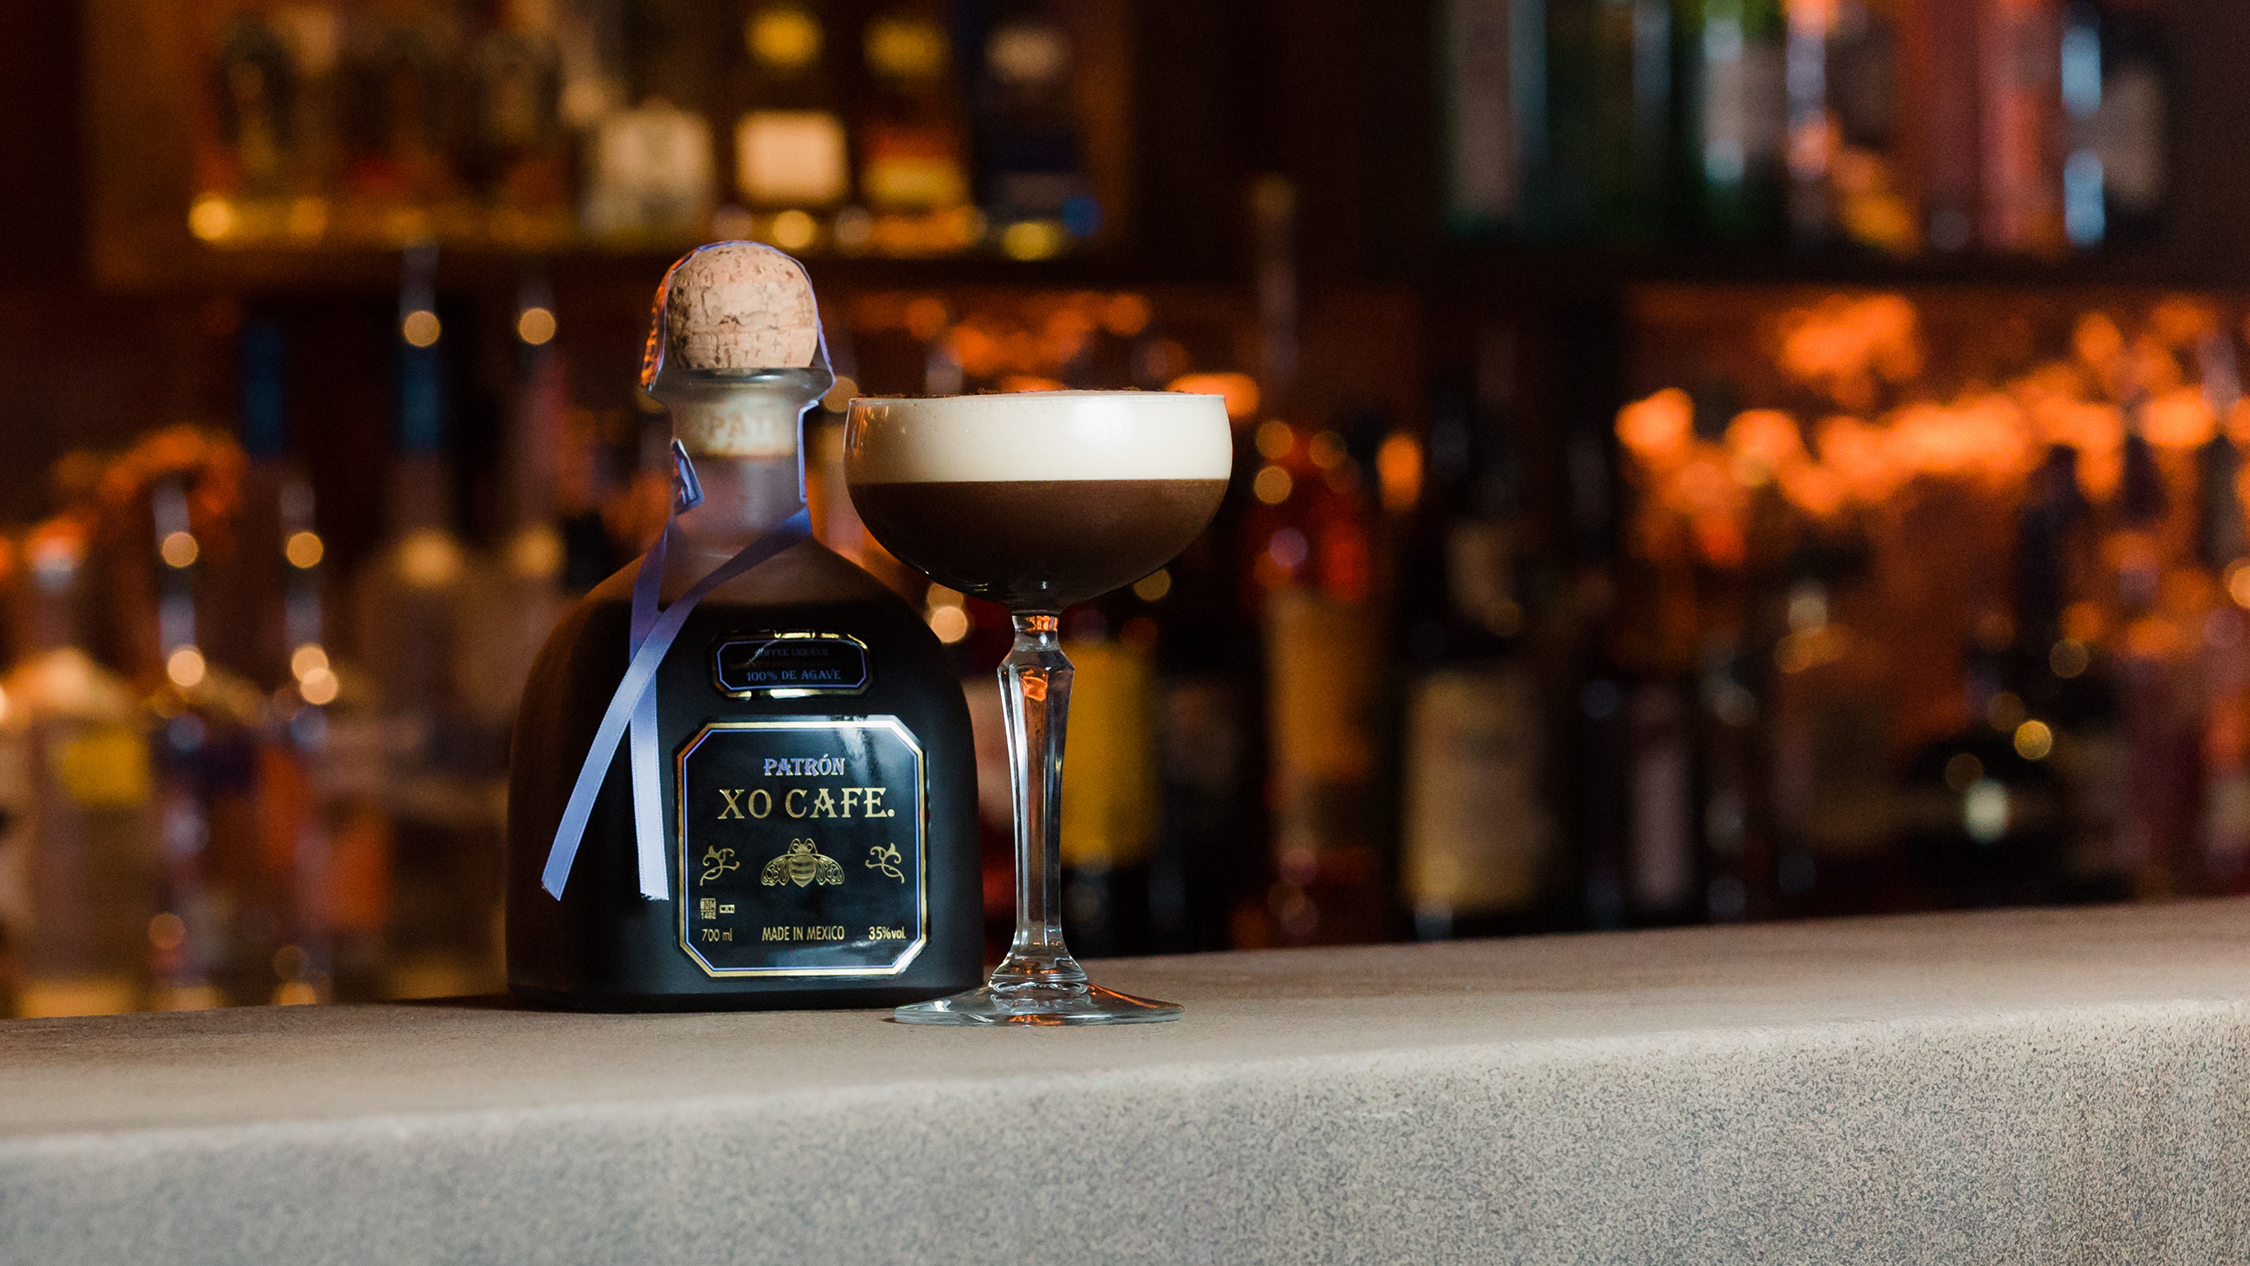 The Argyle Espresso Martini Patron